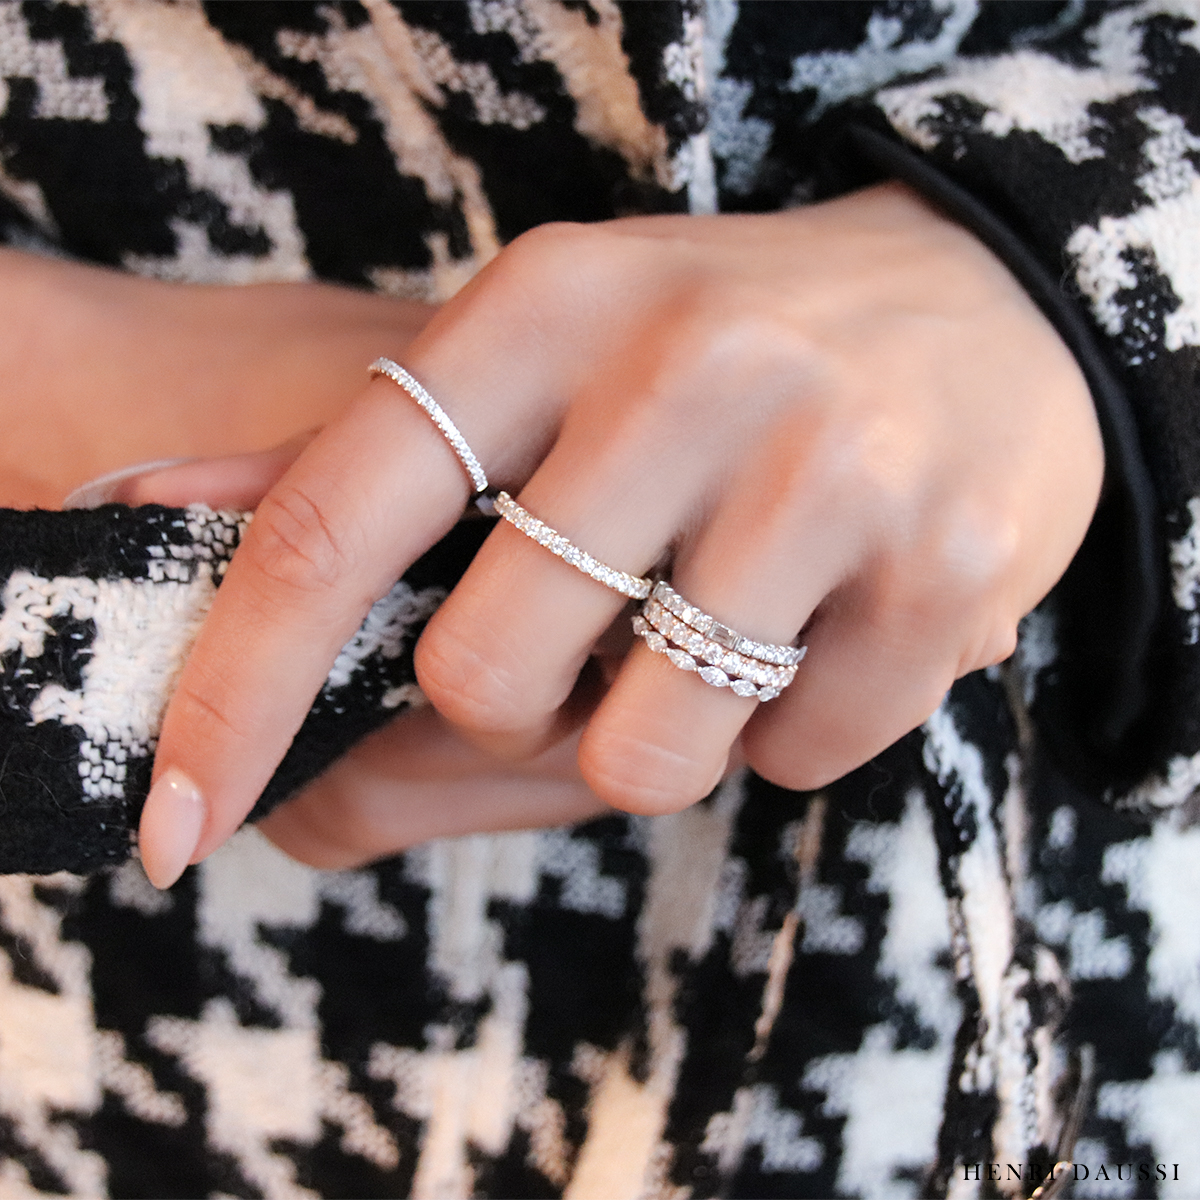 Bundle up and head to your nearest Henri Daussi retailer this weekend for the Valentine's Day gift you know they'll love 💍  #StackingRings #RingStack #DiamondBands #RingInspo #ValentinesDayGift #GiftIdeas #AnniversaryGift #HenriDaussi   https://t.co/R7ILDrKF2j https://t.co/RjpS4muqPG